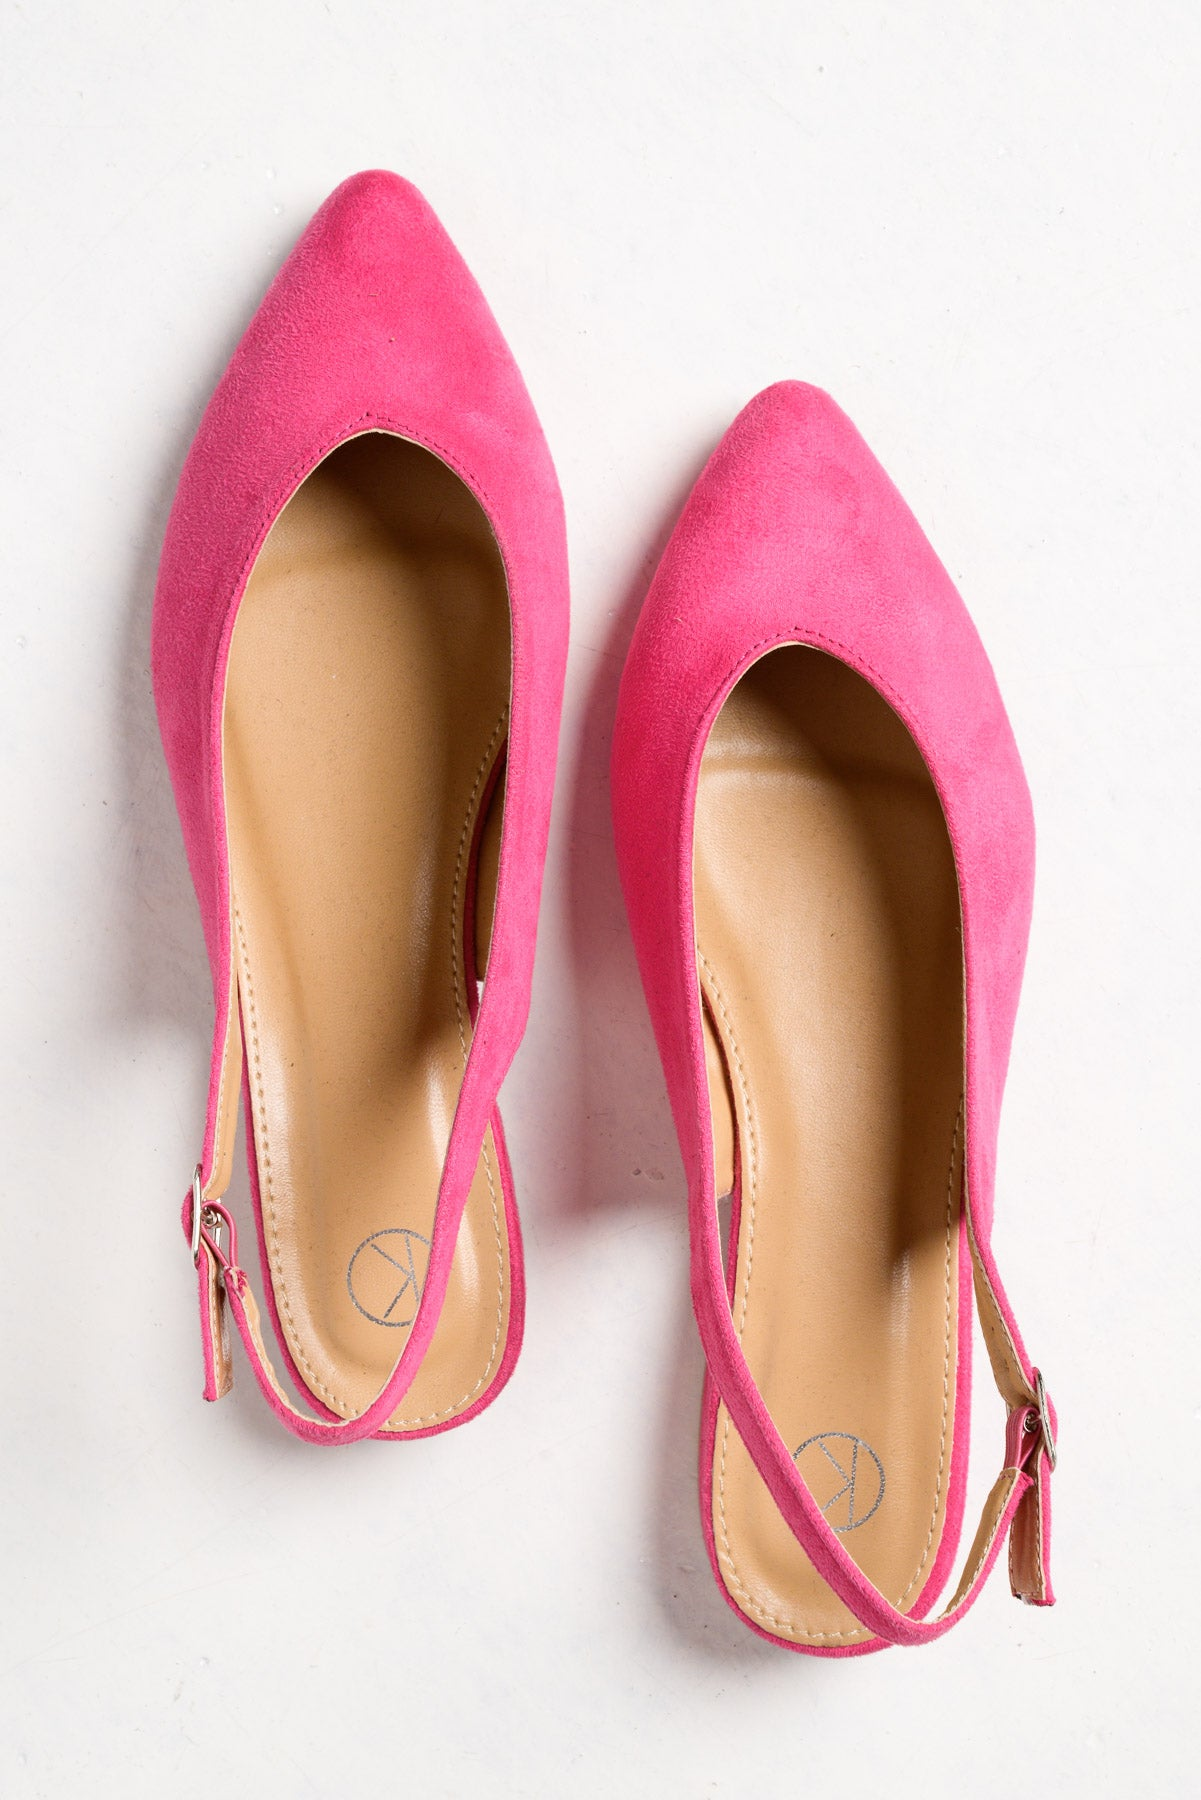 Pippa Pink Slingback Shoe - Blue Bungalow